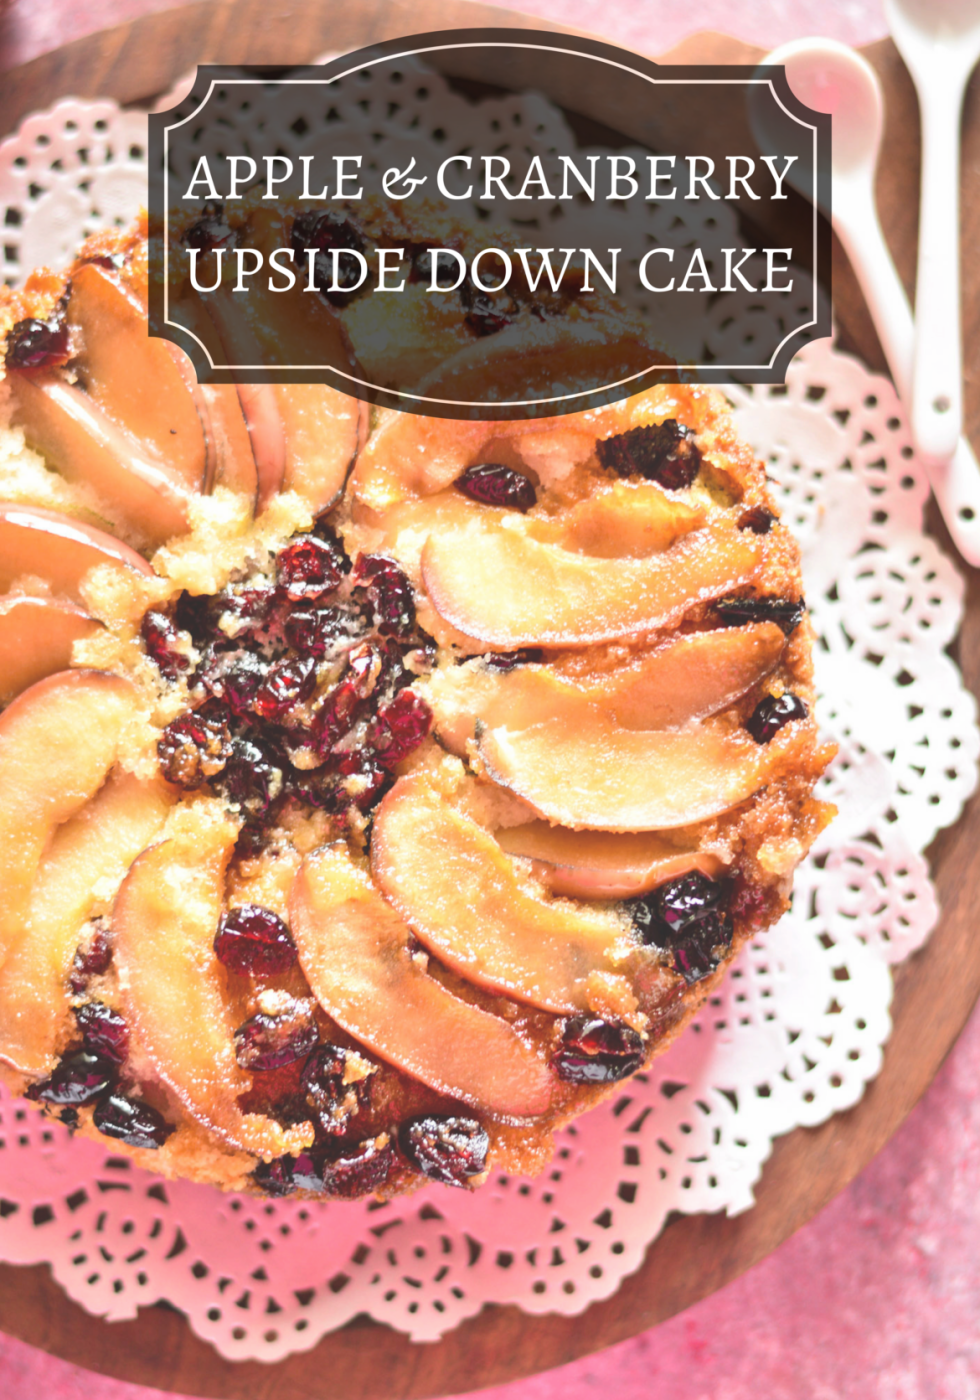 Apple & Cranberry Upside Down Cake